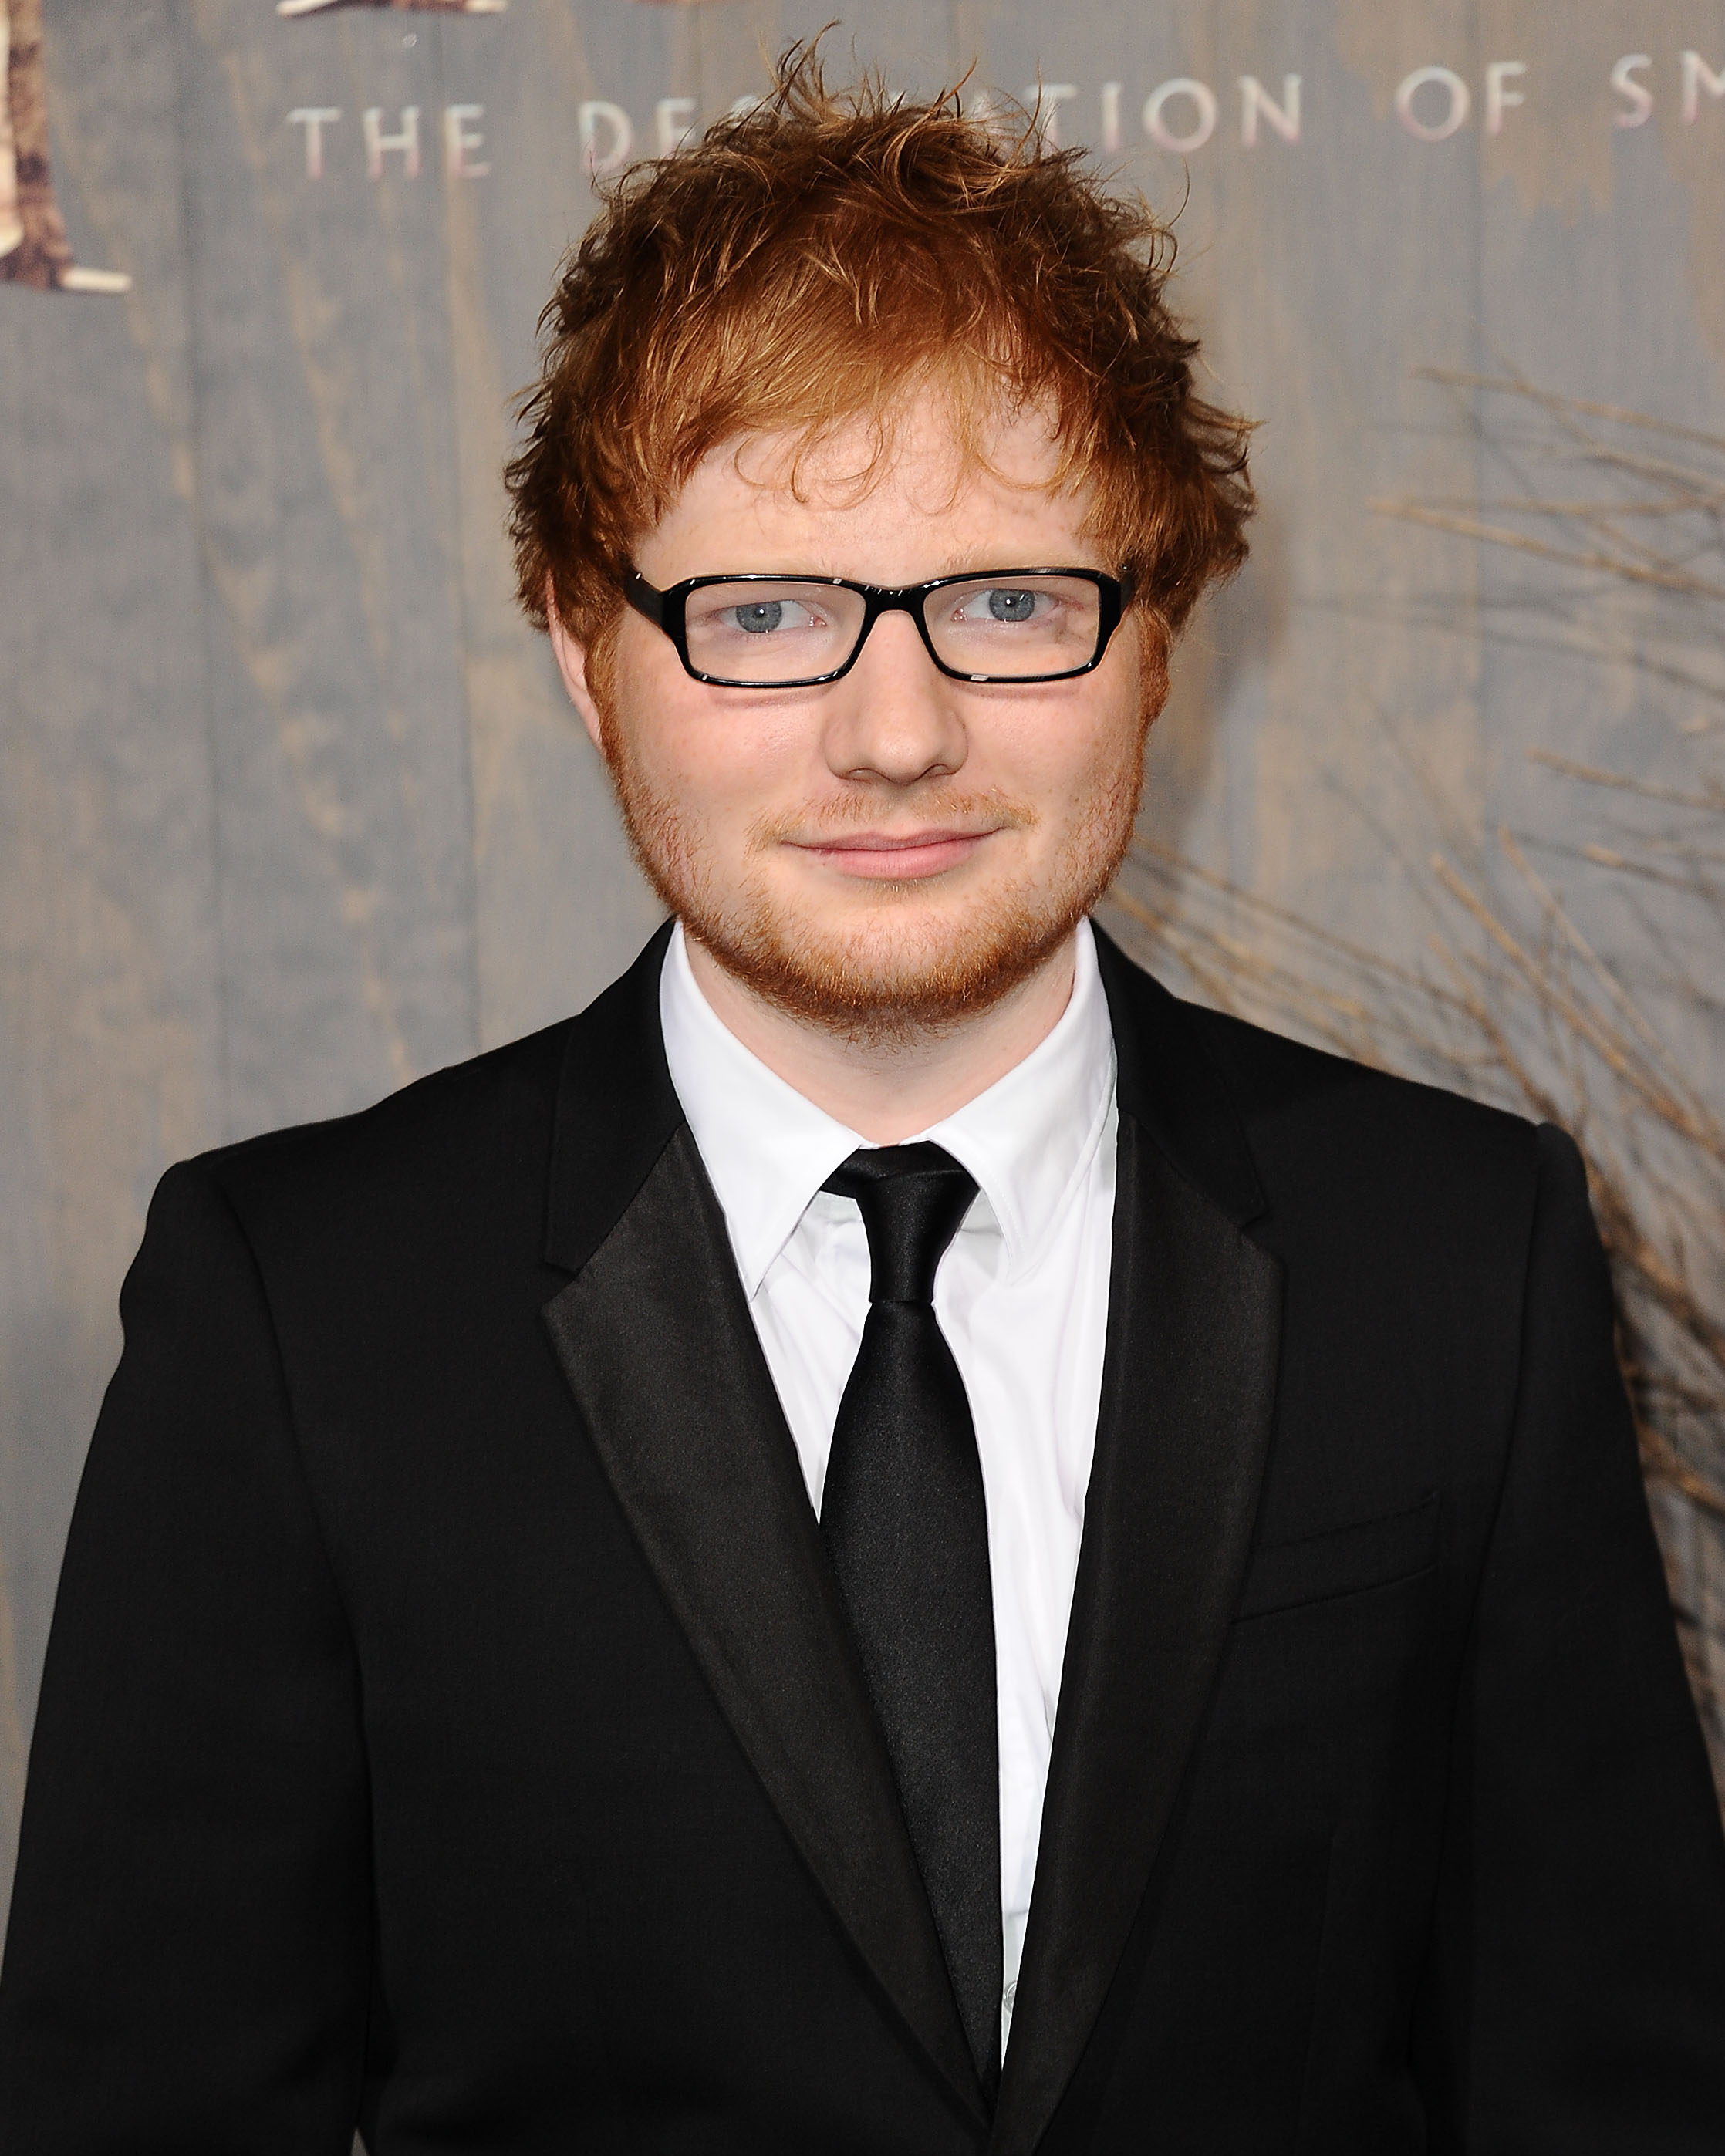 Ed Sheeran Wrote The Perfect First-Dance Song